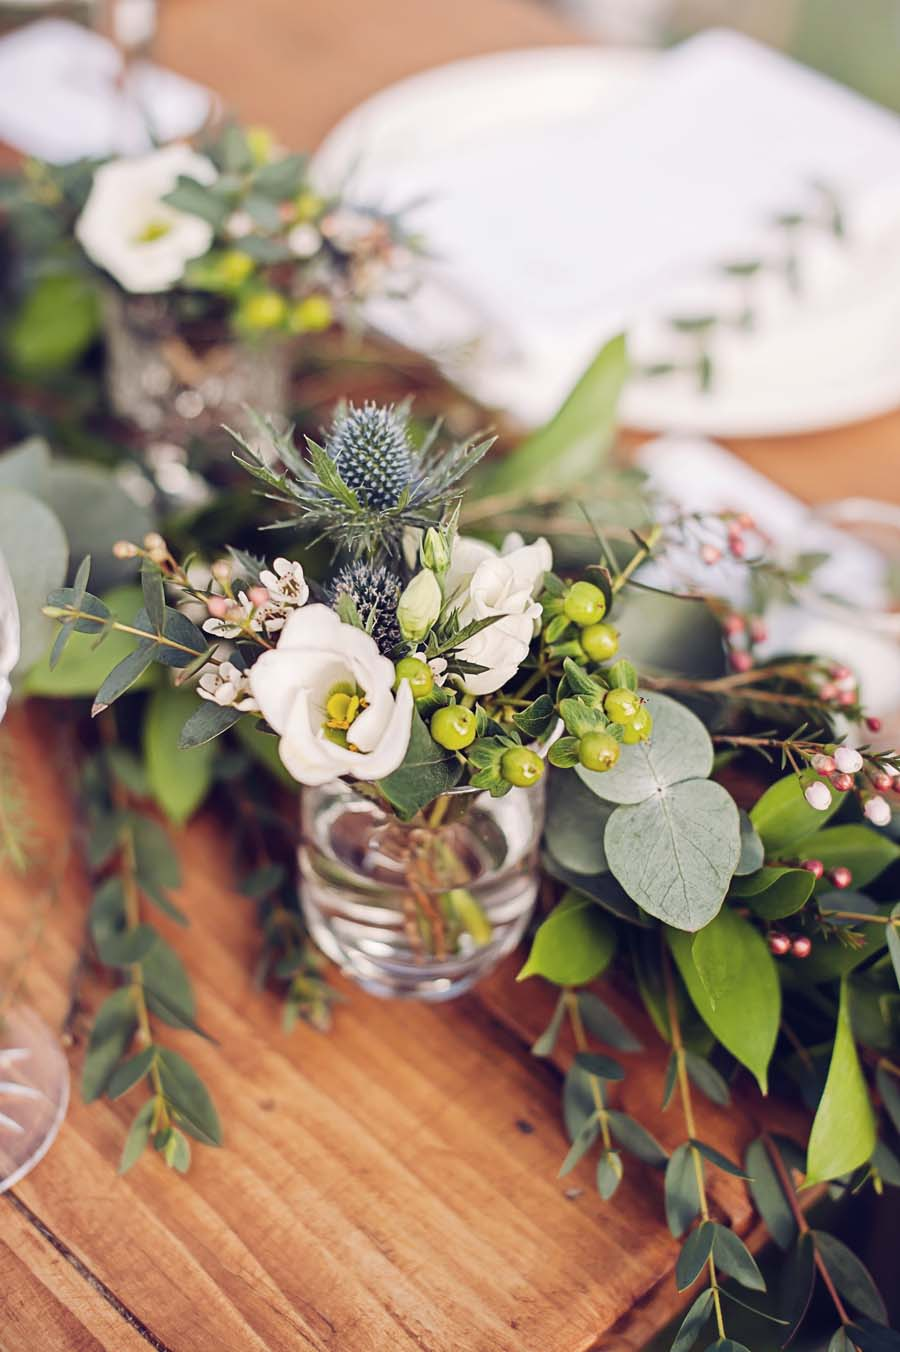 The Perfect Romantic Rustic-Glam Tablescape!